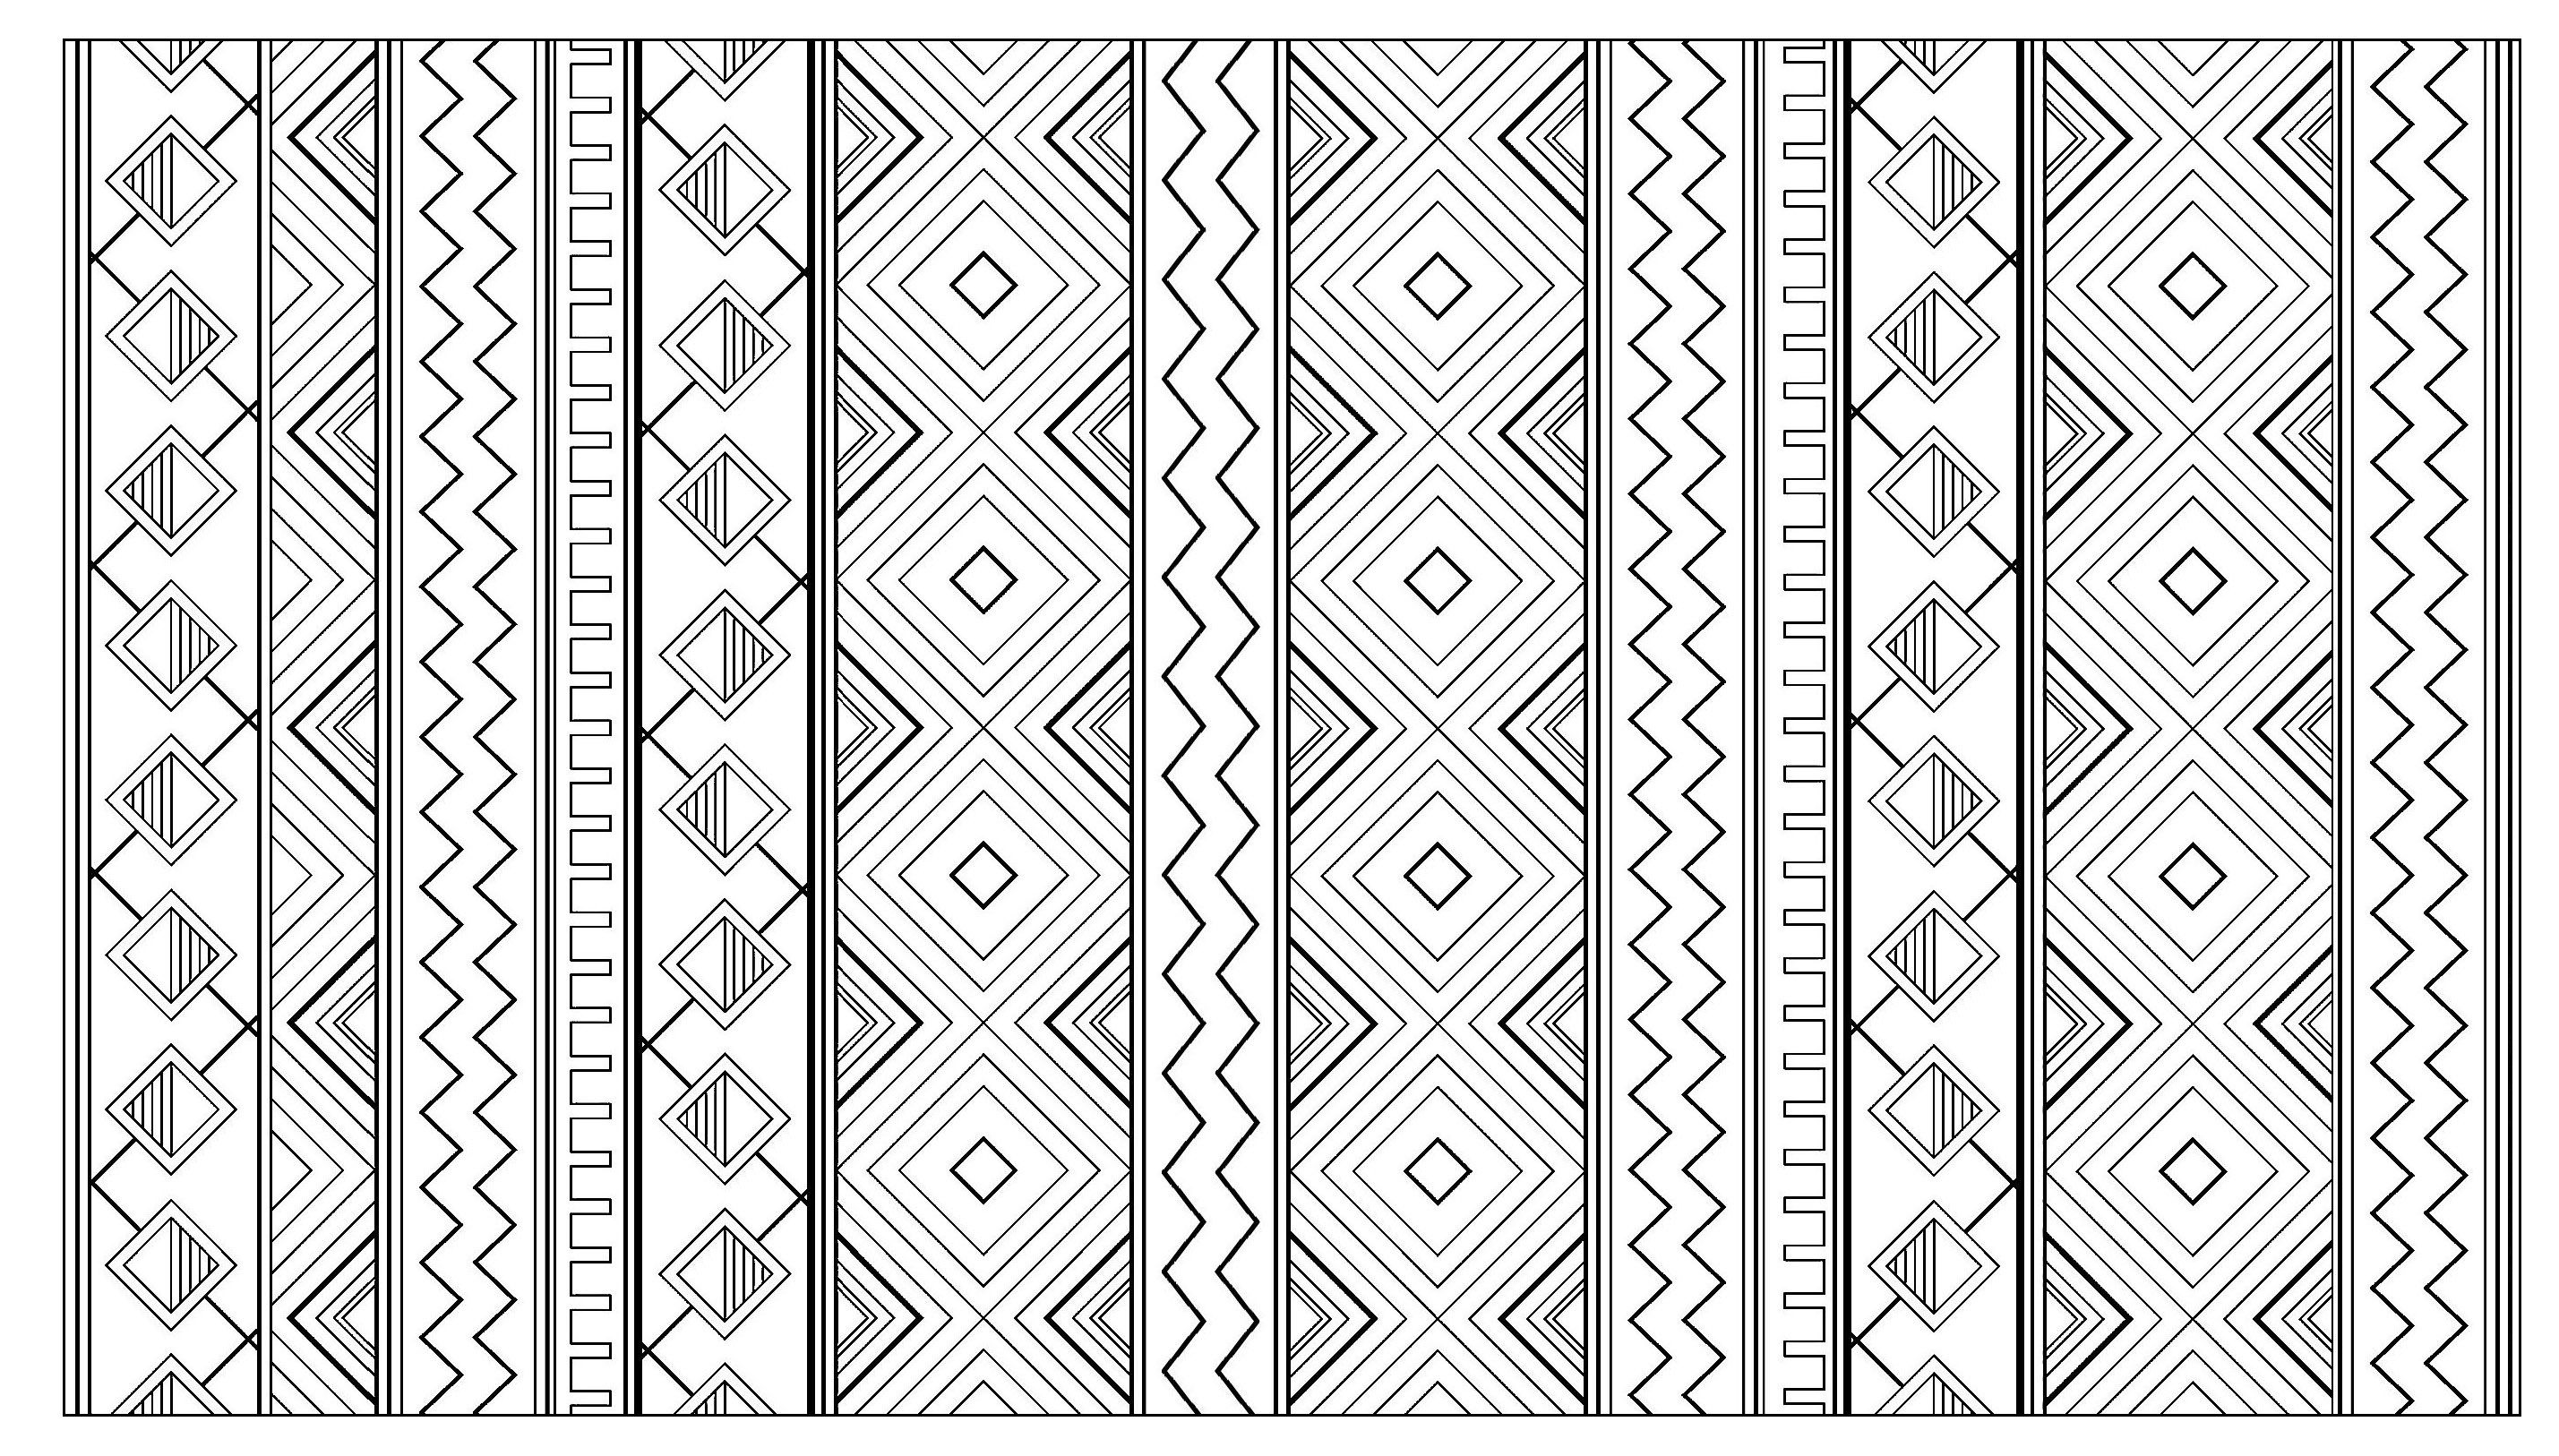 Free coloring page coloring-adult-inca-aztec-mayan-pattern ...